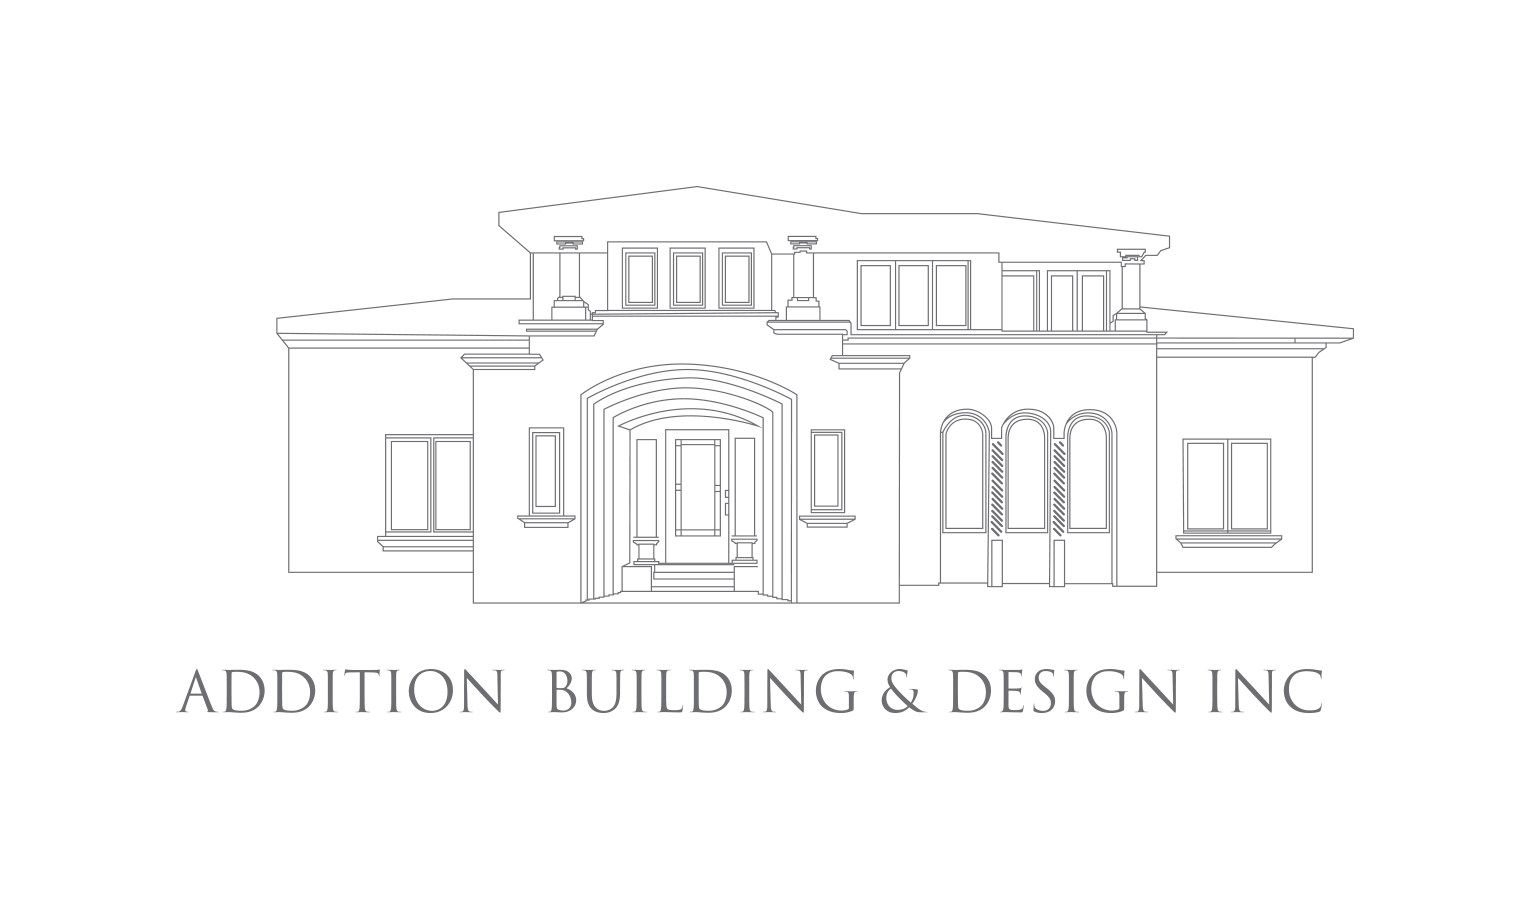 Additional Building and Design